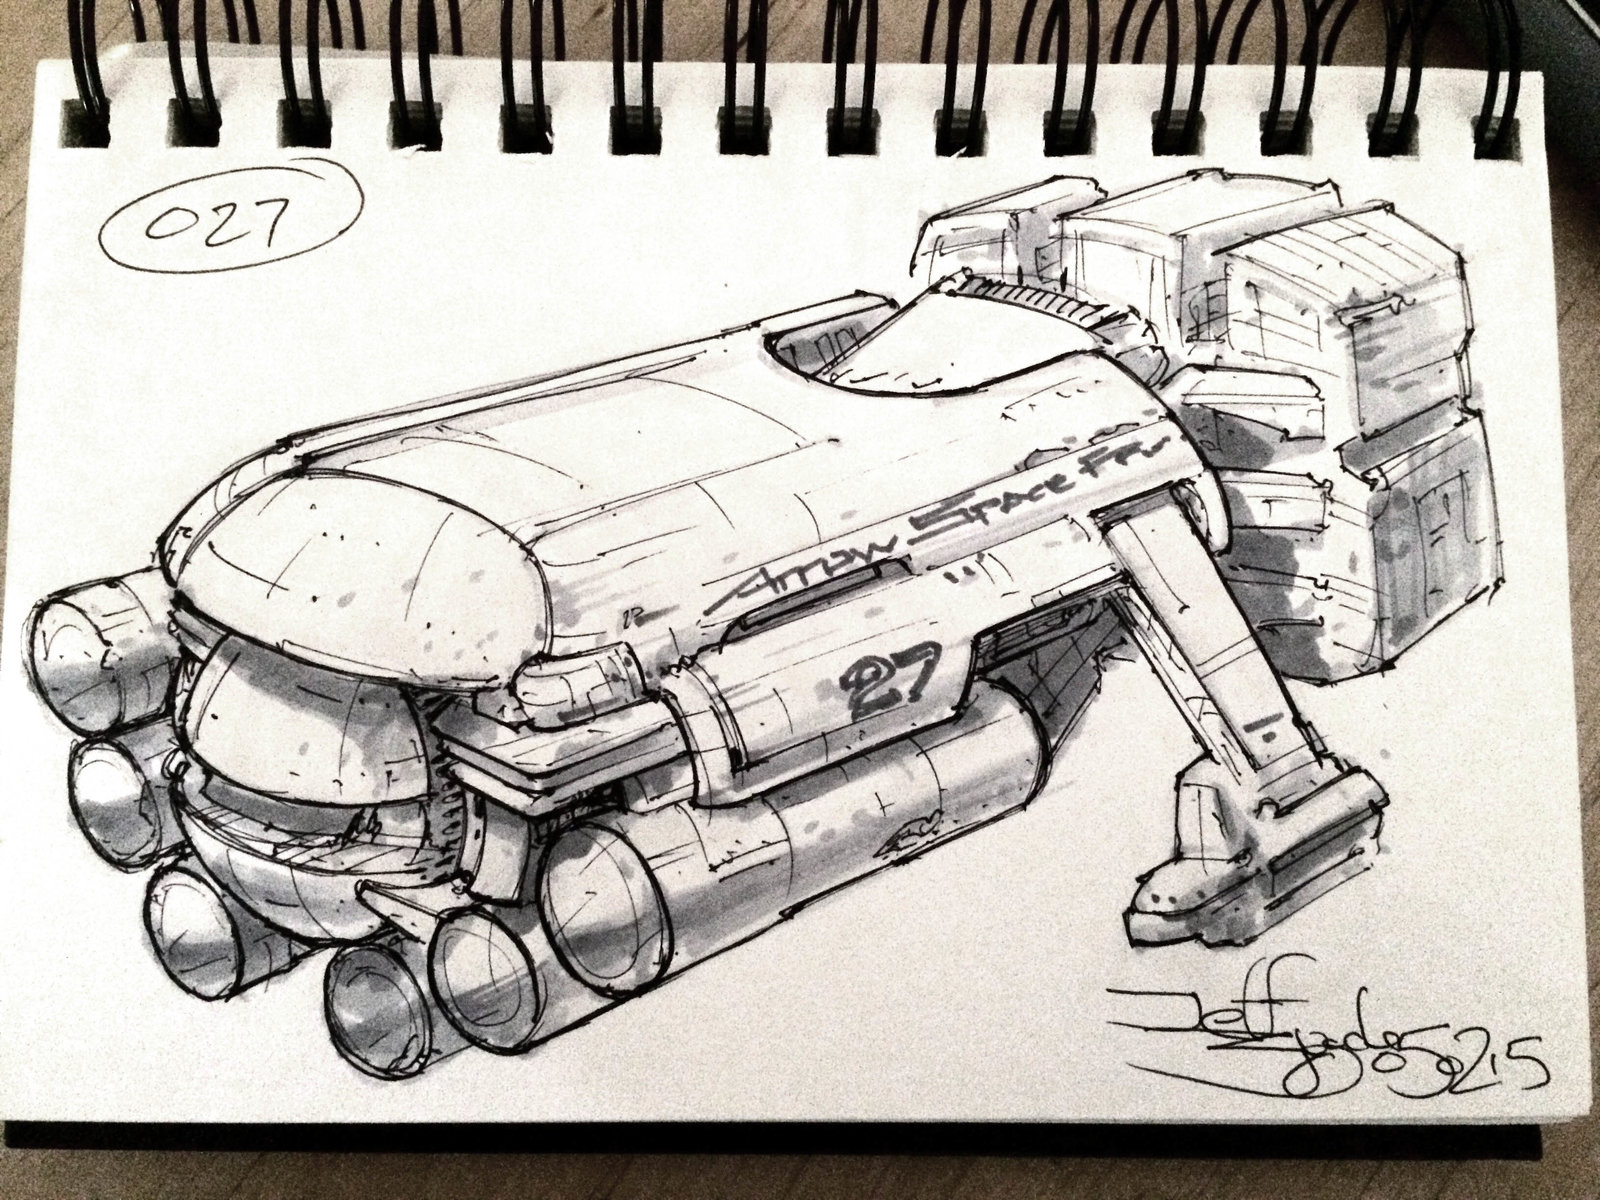 SpaceshipADay 027